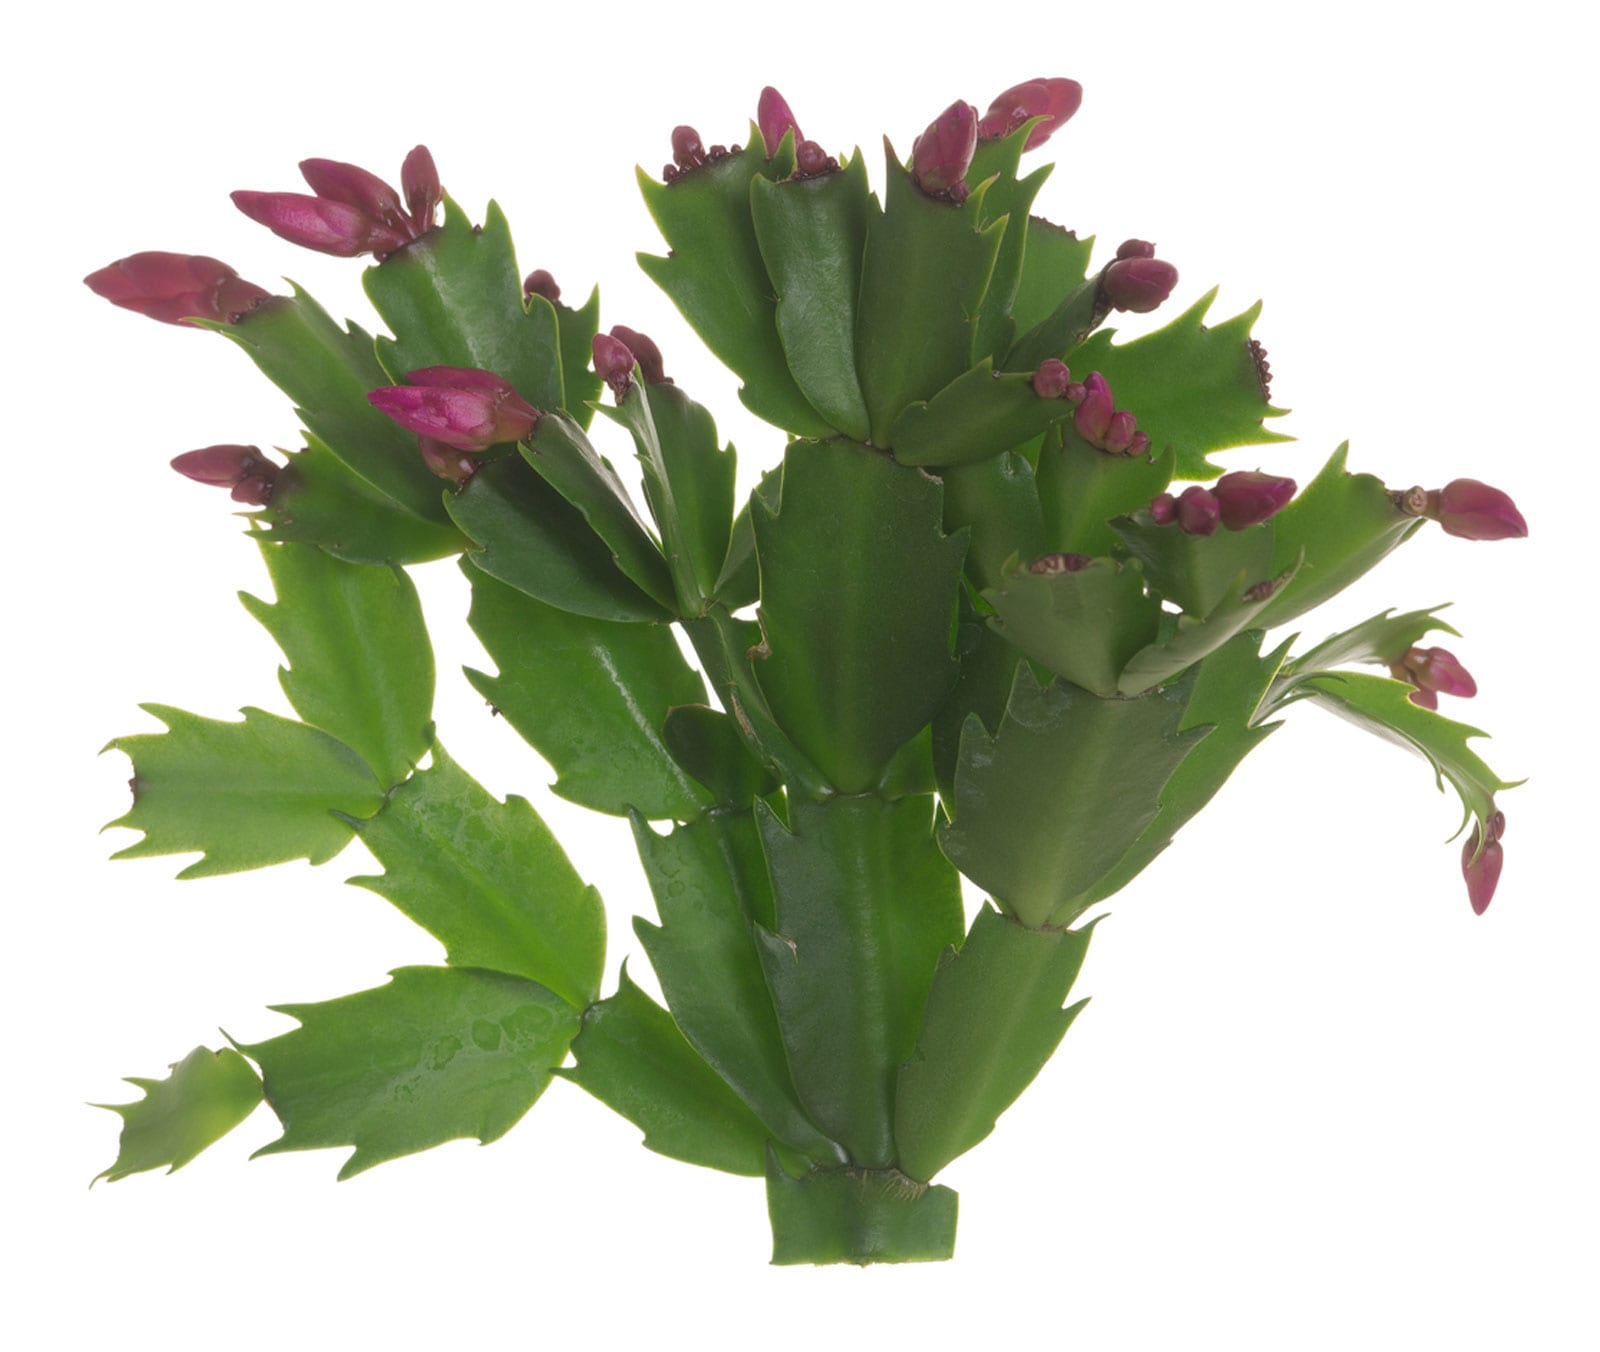 Thanksgiving Cactus Information Learn About Thanksgiving Cactus Plant Care